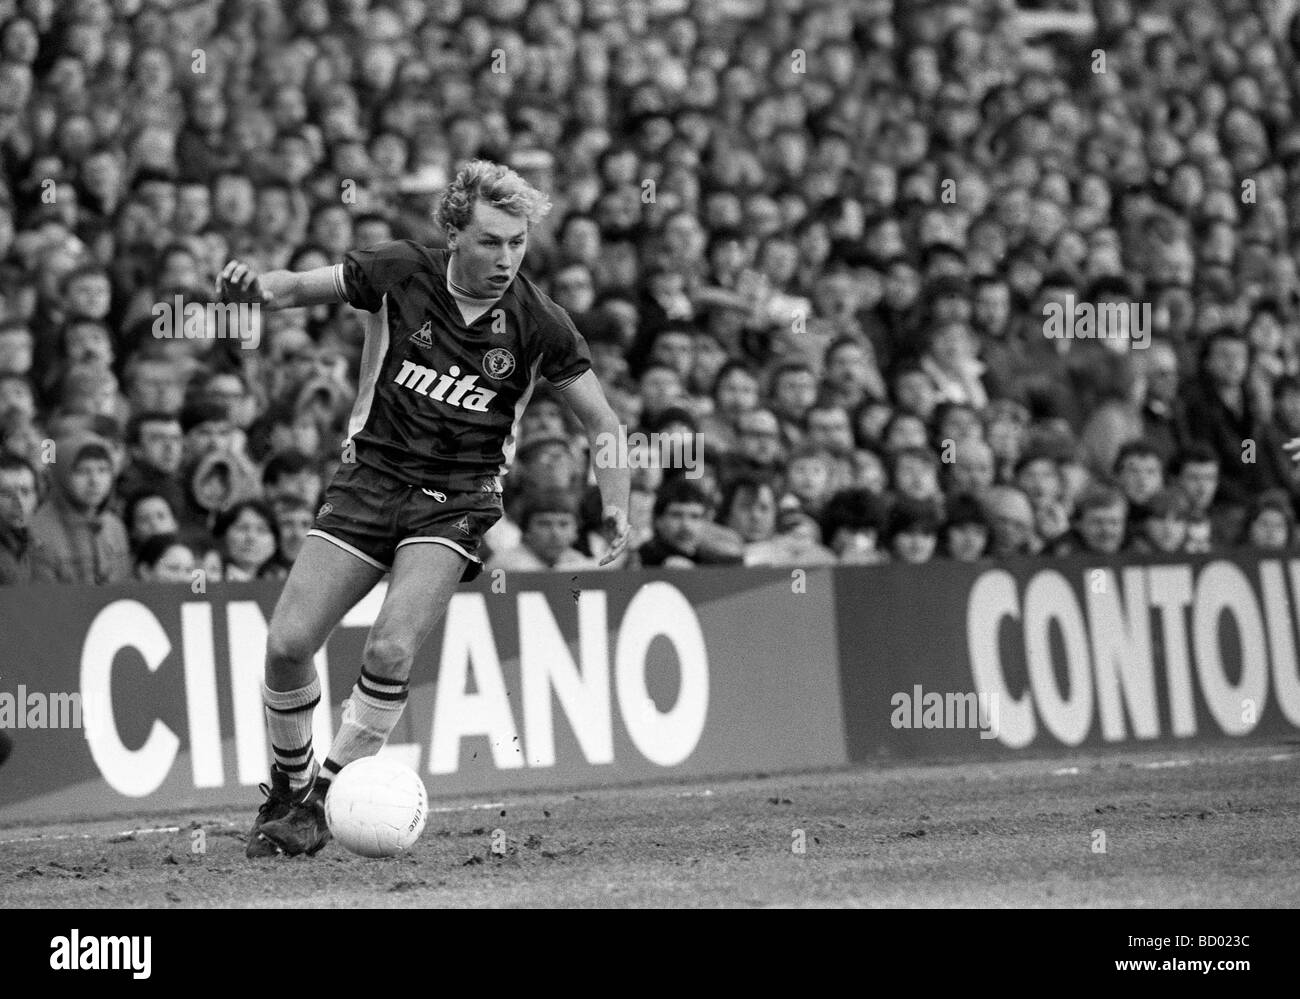 Aston Villa v Manchester United at Villa Park Paul Birch footballer who died of cancer in 2009 - Stock Image